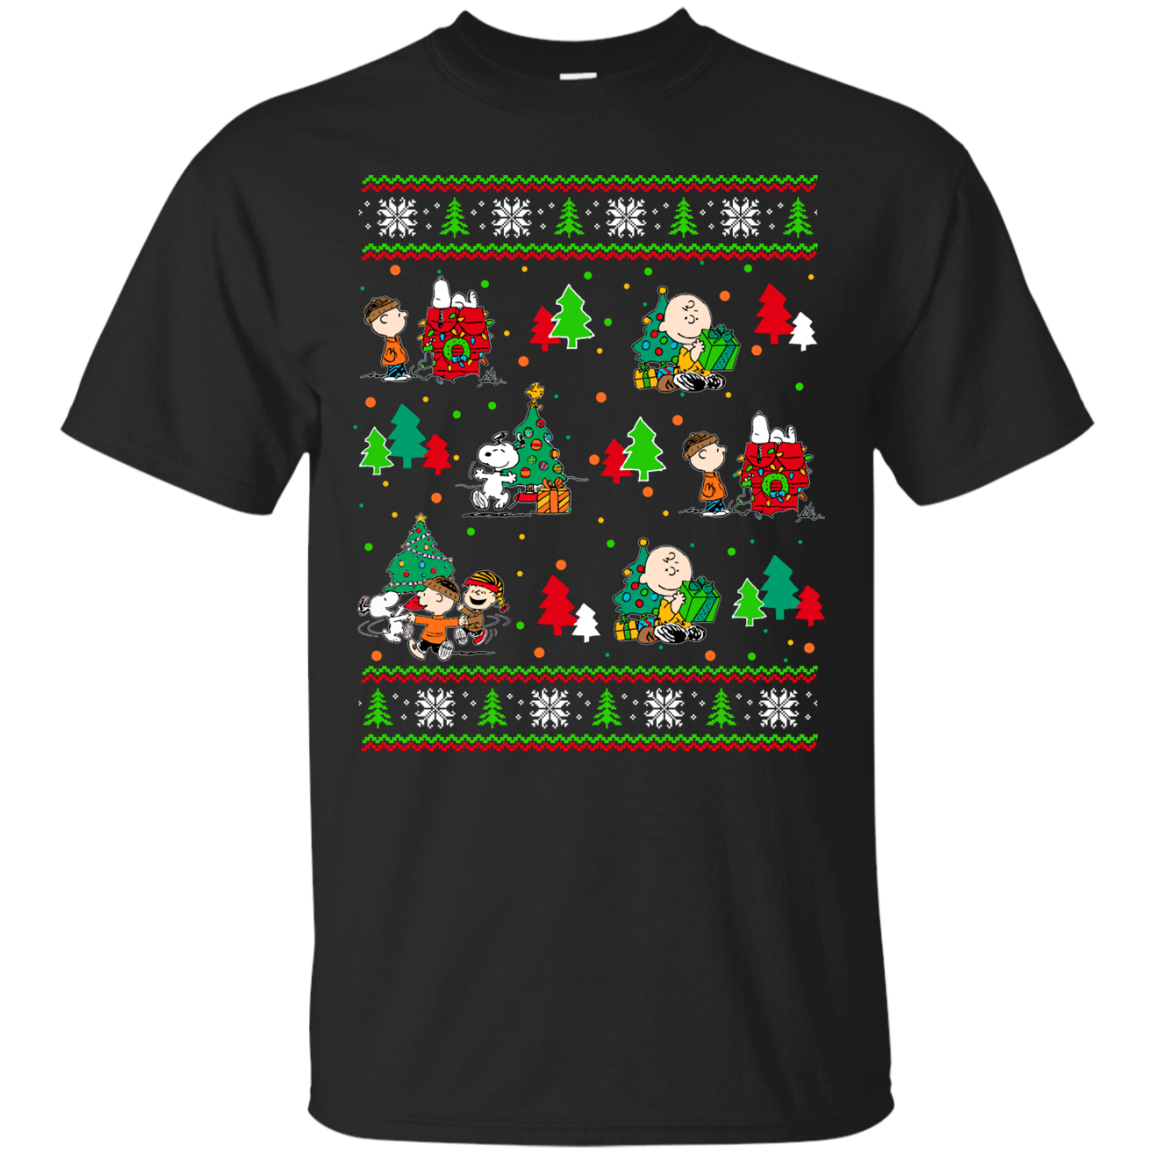 Peanuts friends - Give Christmas gifts